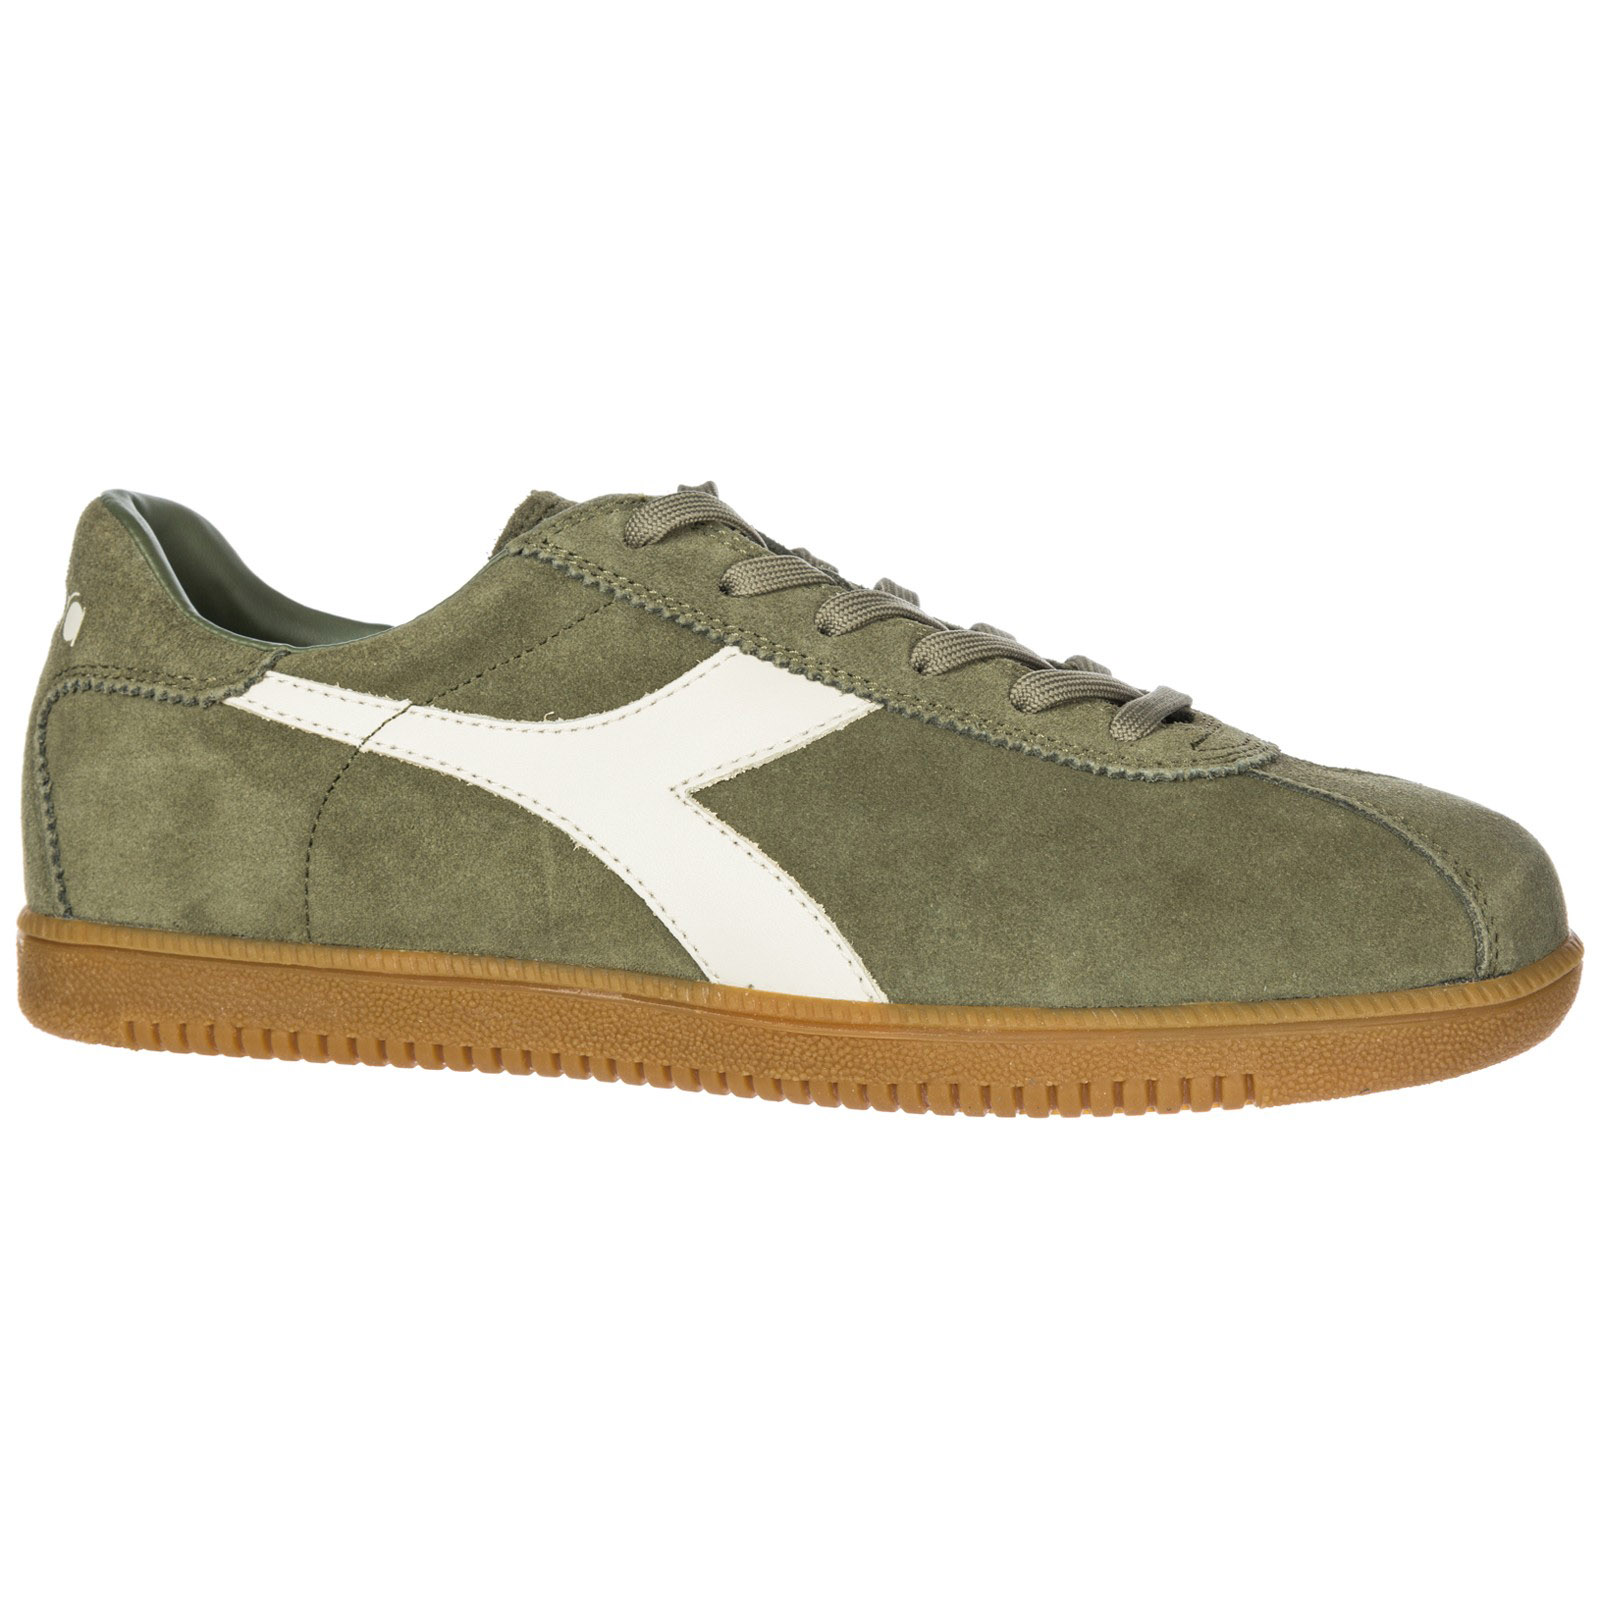 172302 White Burnt Green Sneakers Olive Diadora 501 BtxorChQsd